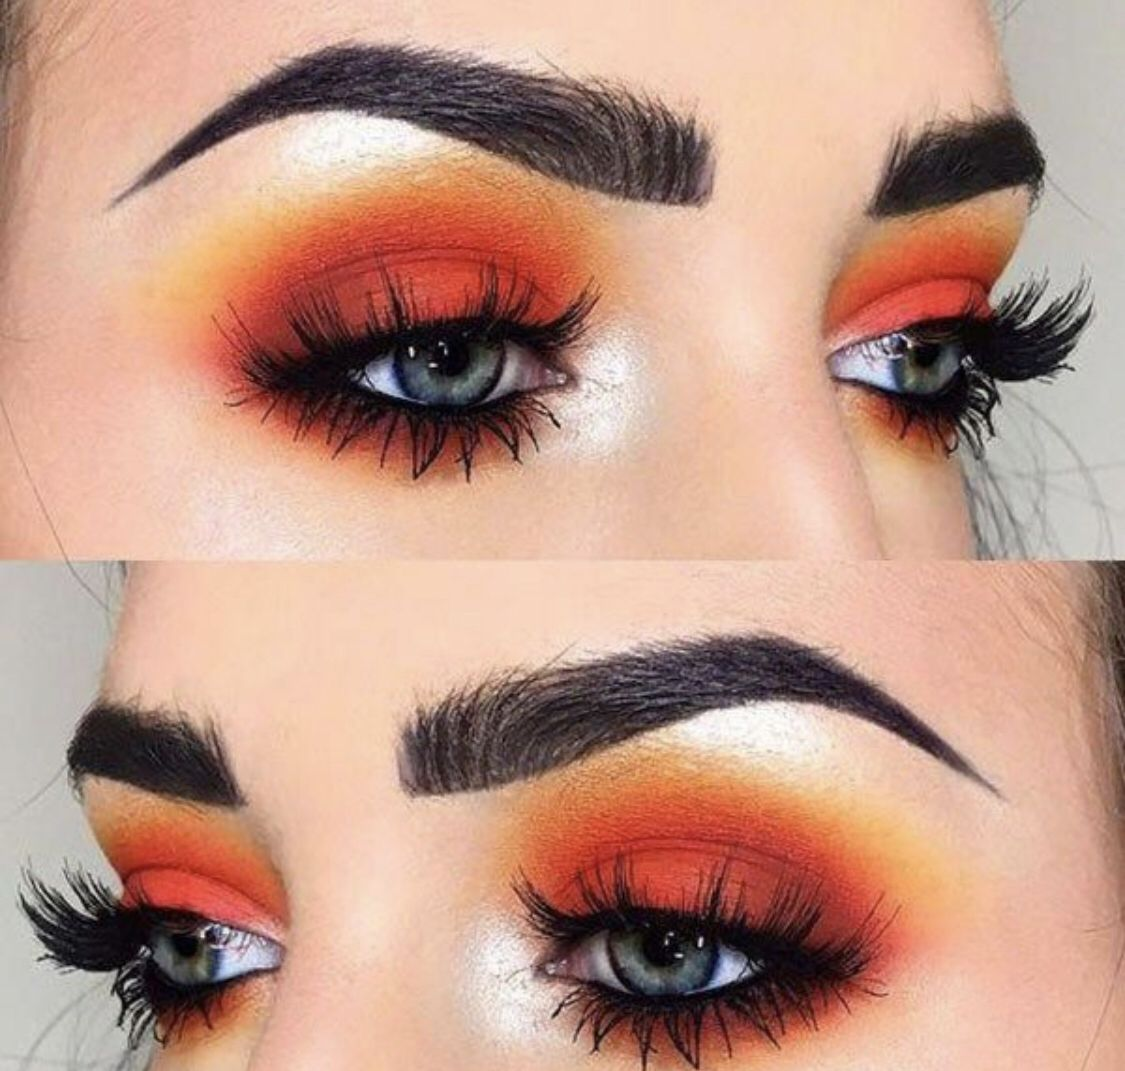 Firey and hot and everything spicy in this eye look. Love